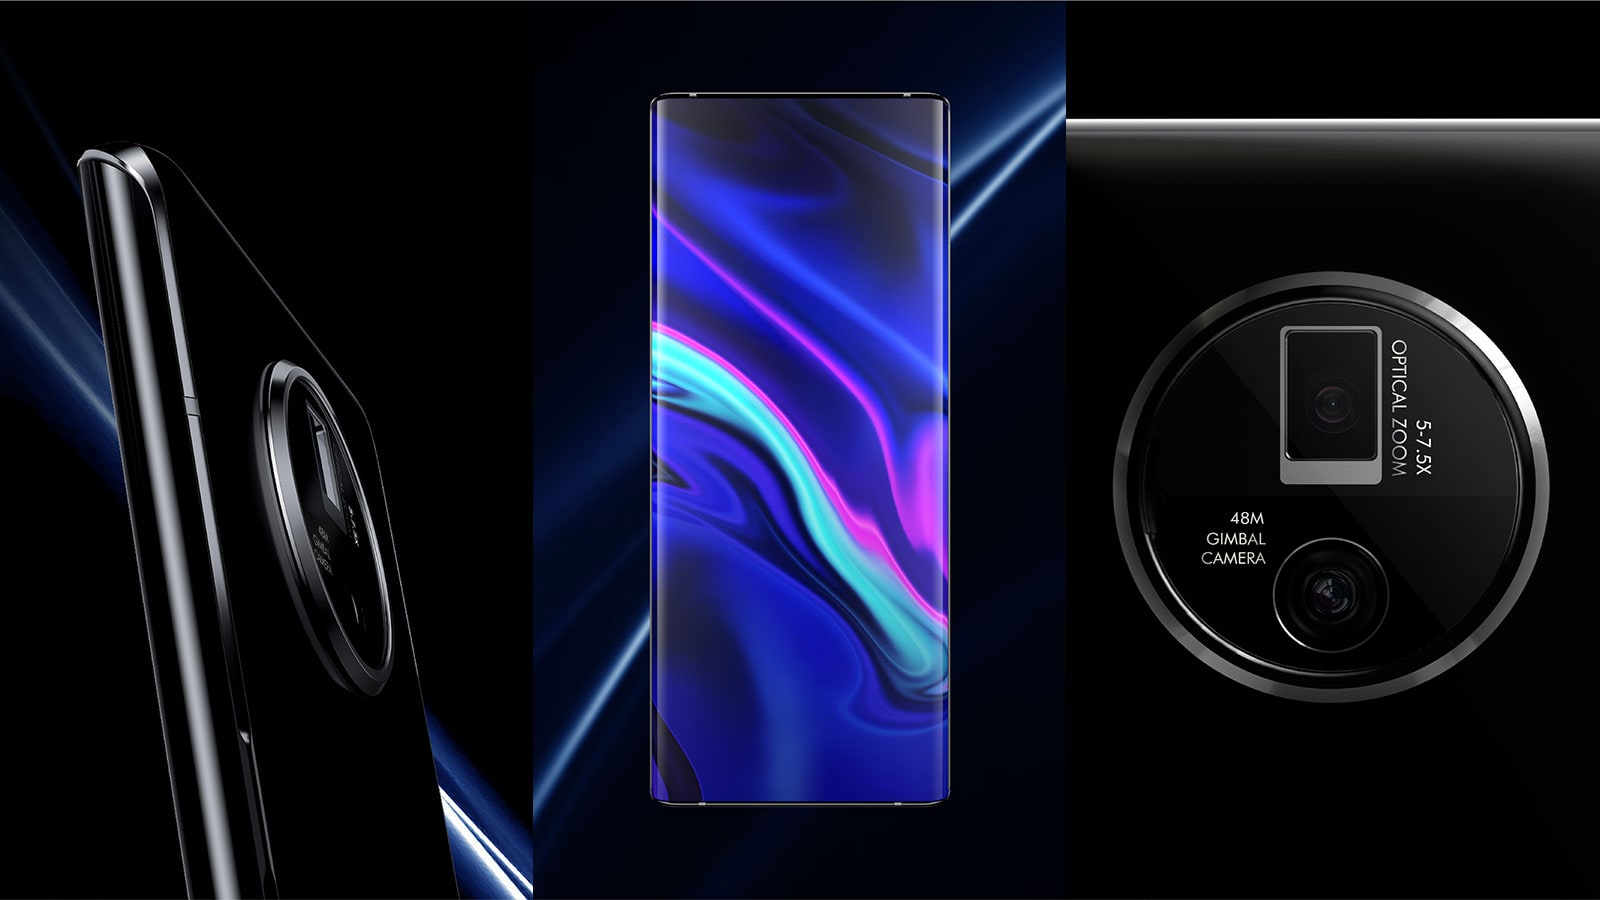 Vivo's new concept phone comes with a 'gimbal camera'